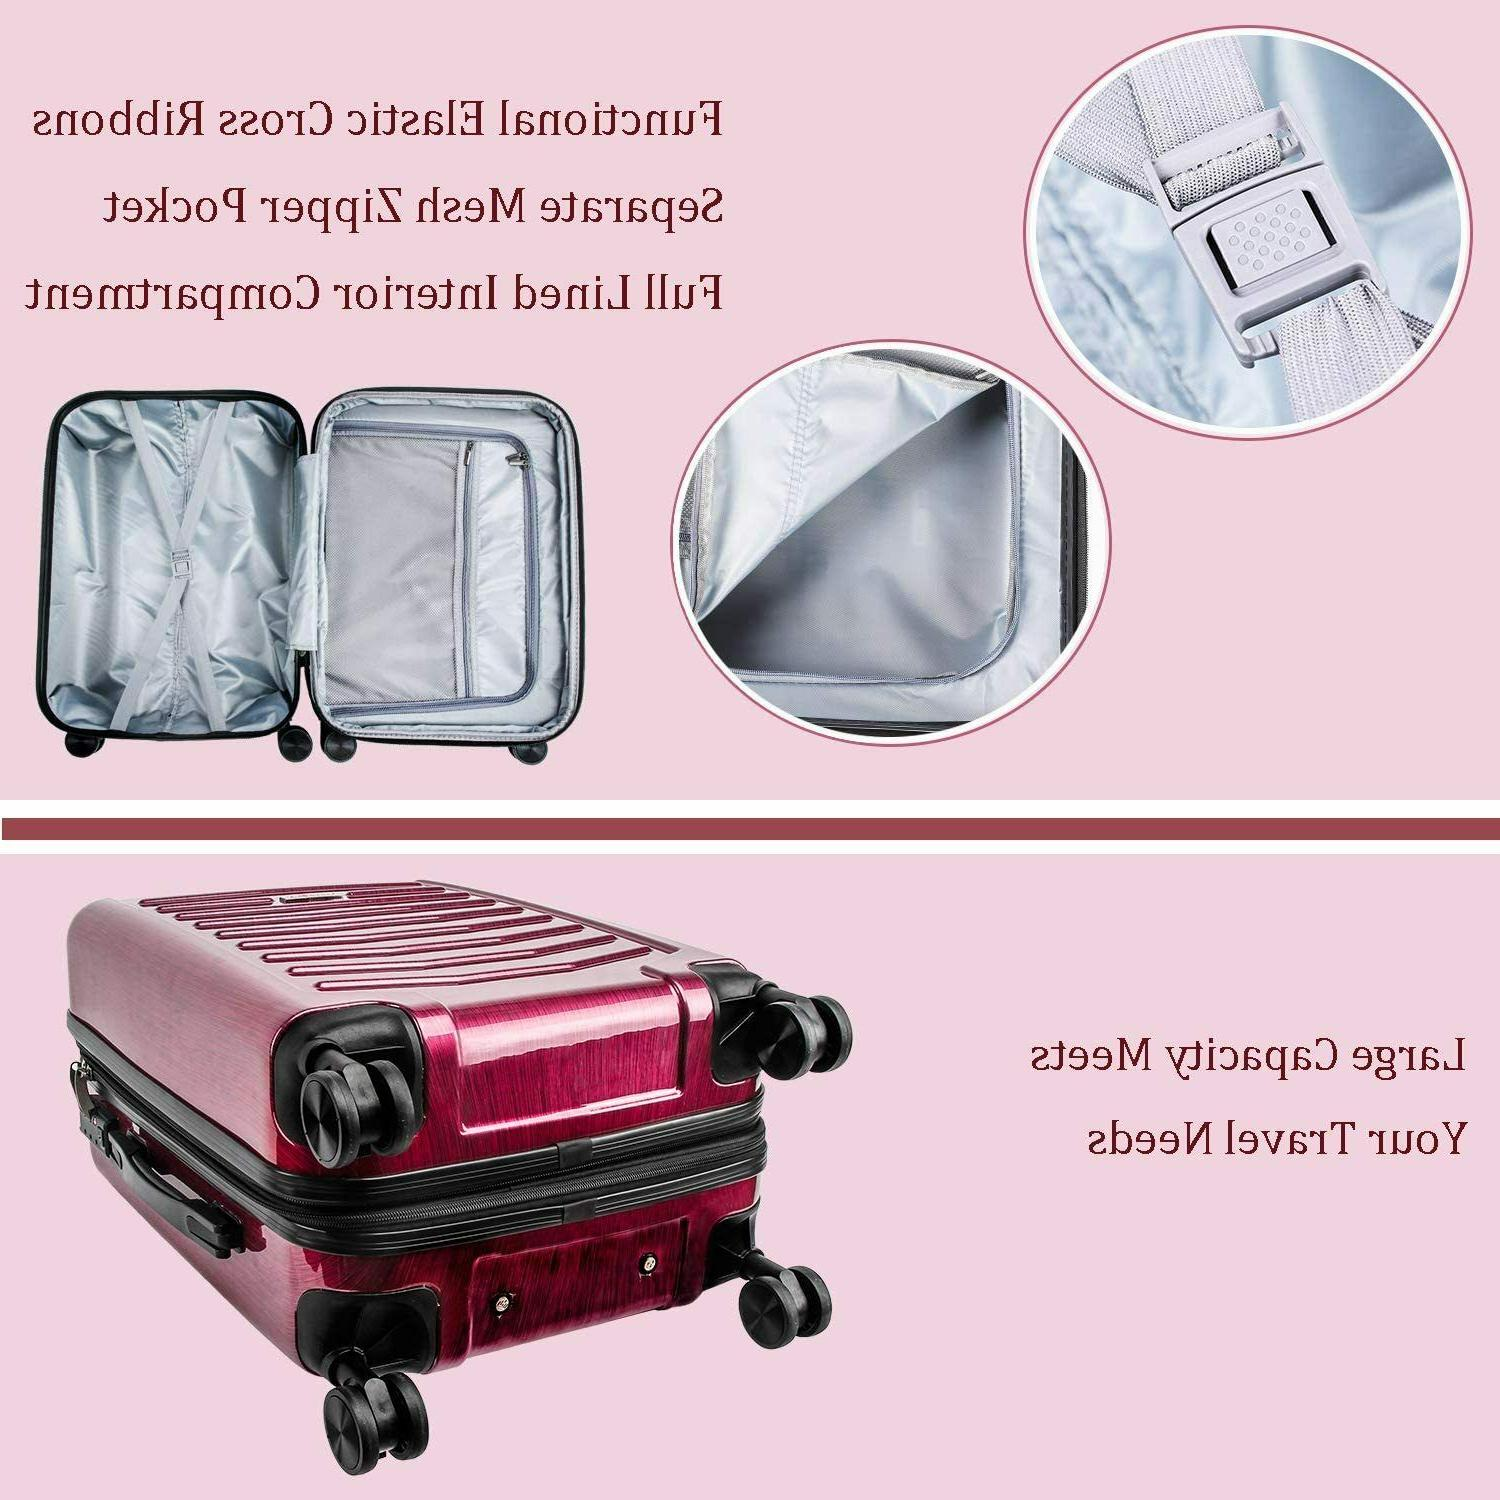 CarryOne Expandable Luggage Inch on Luggage Travel with Sile